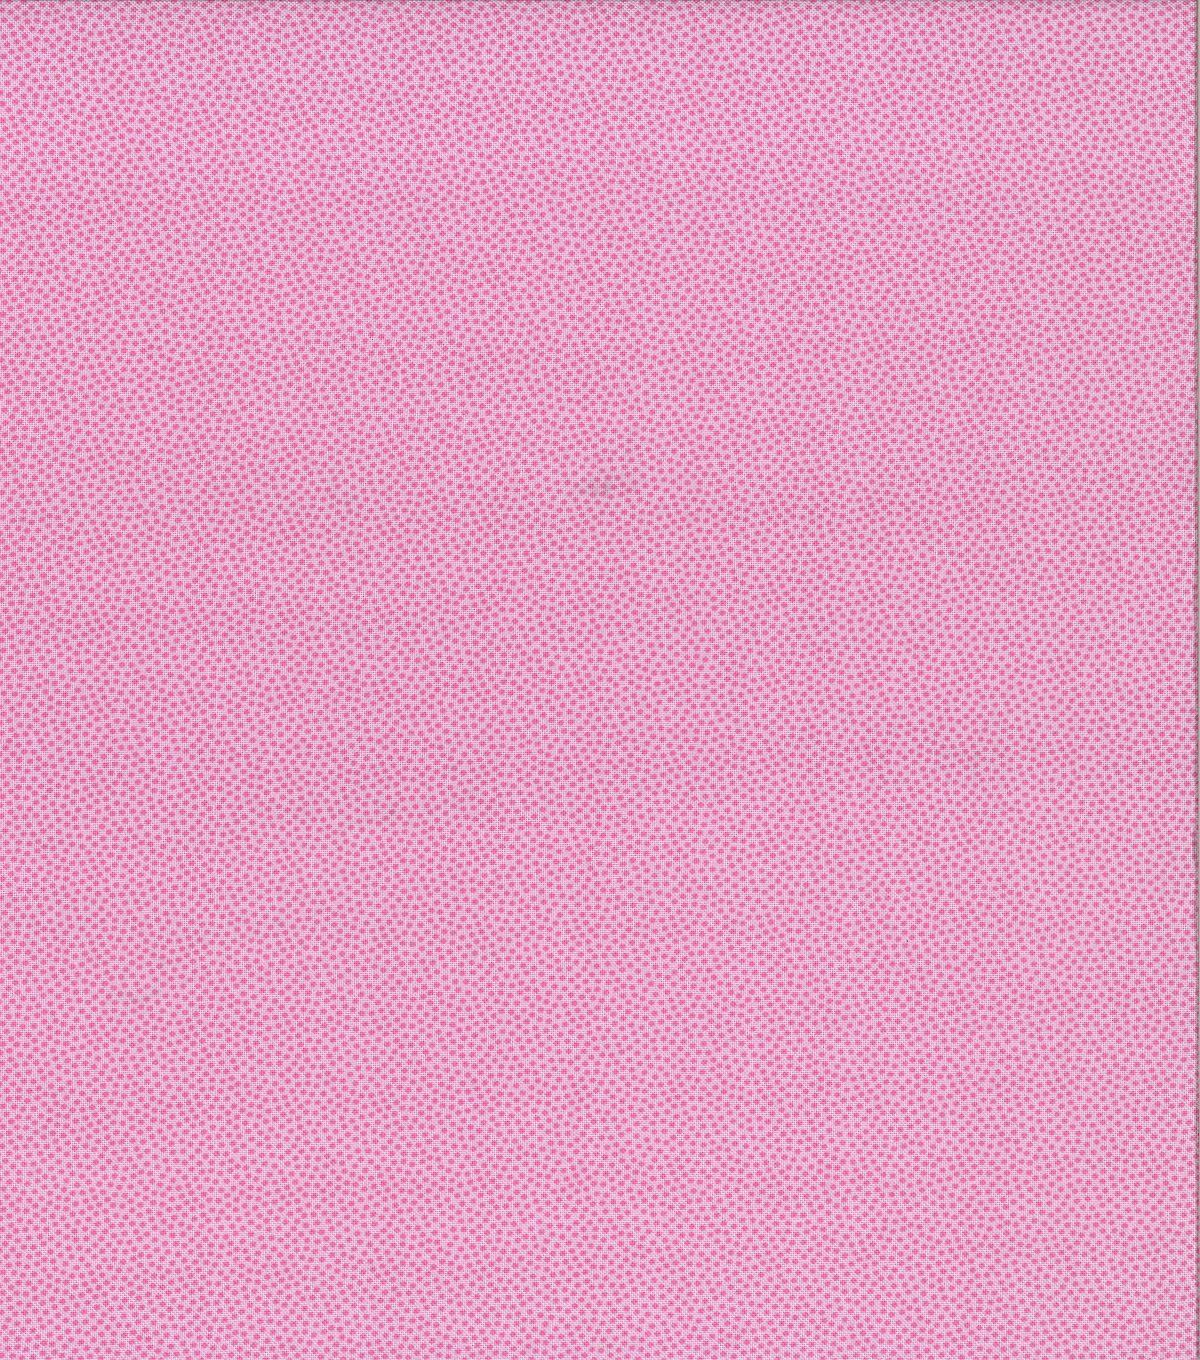 Jules & Coco Quilt Fabric-Speckles Pink